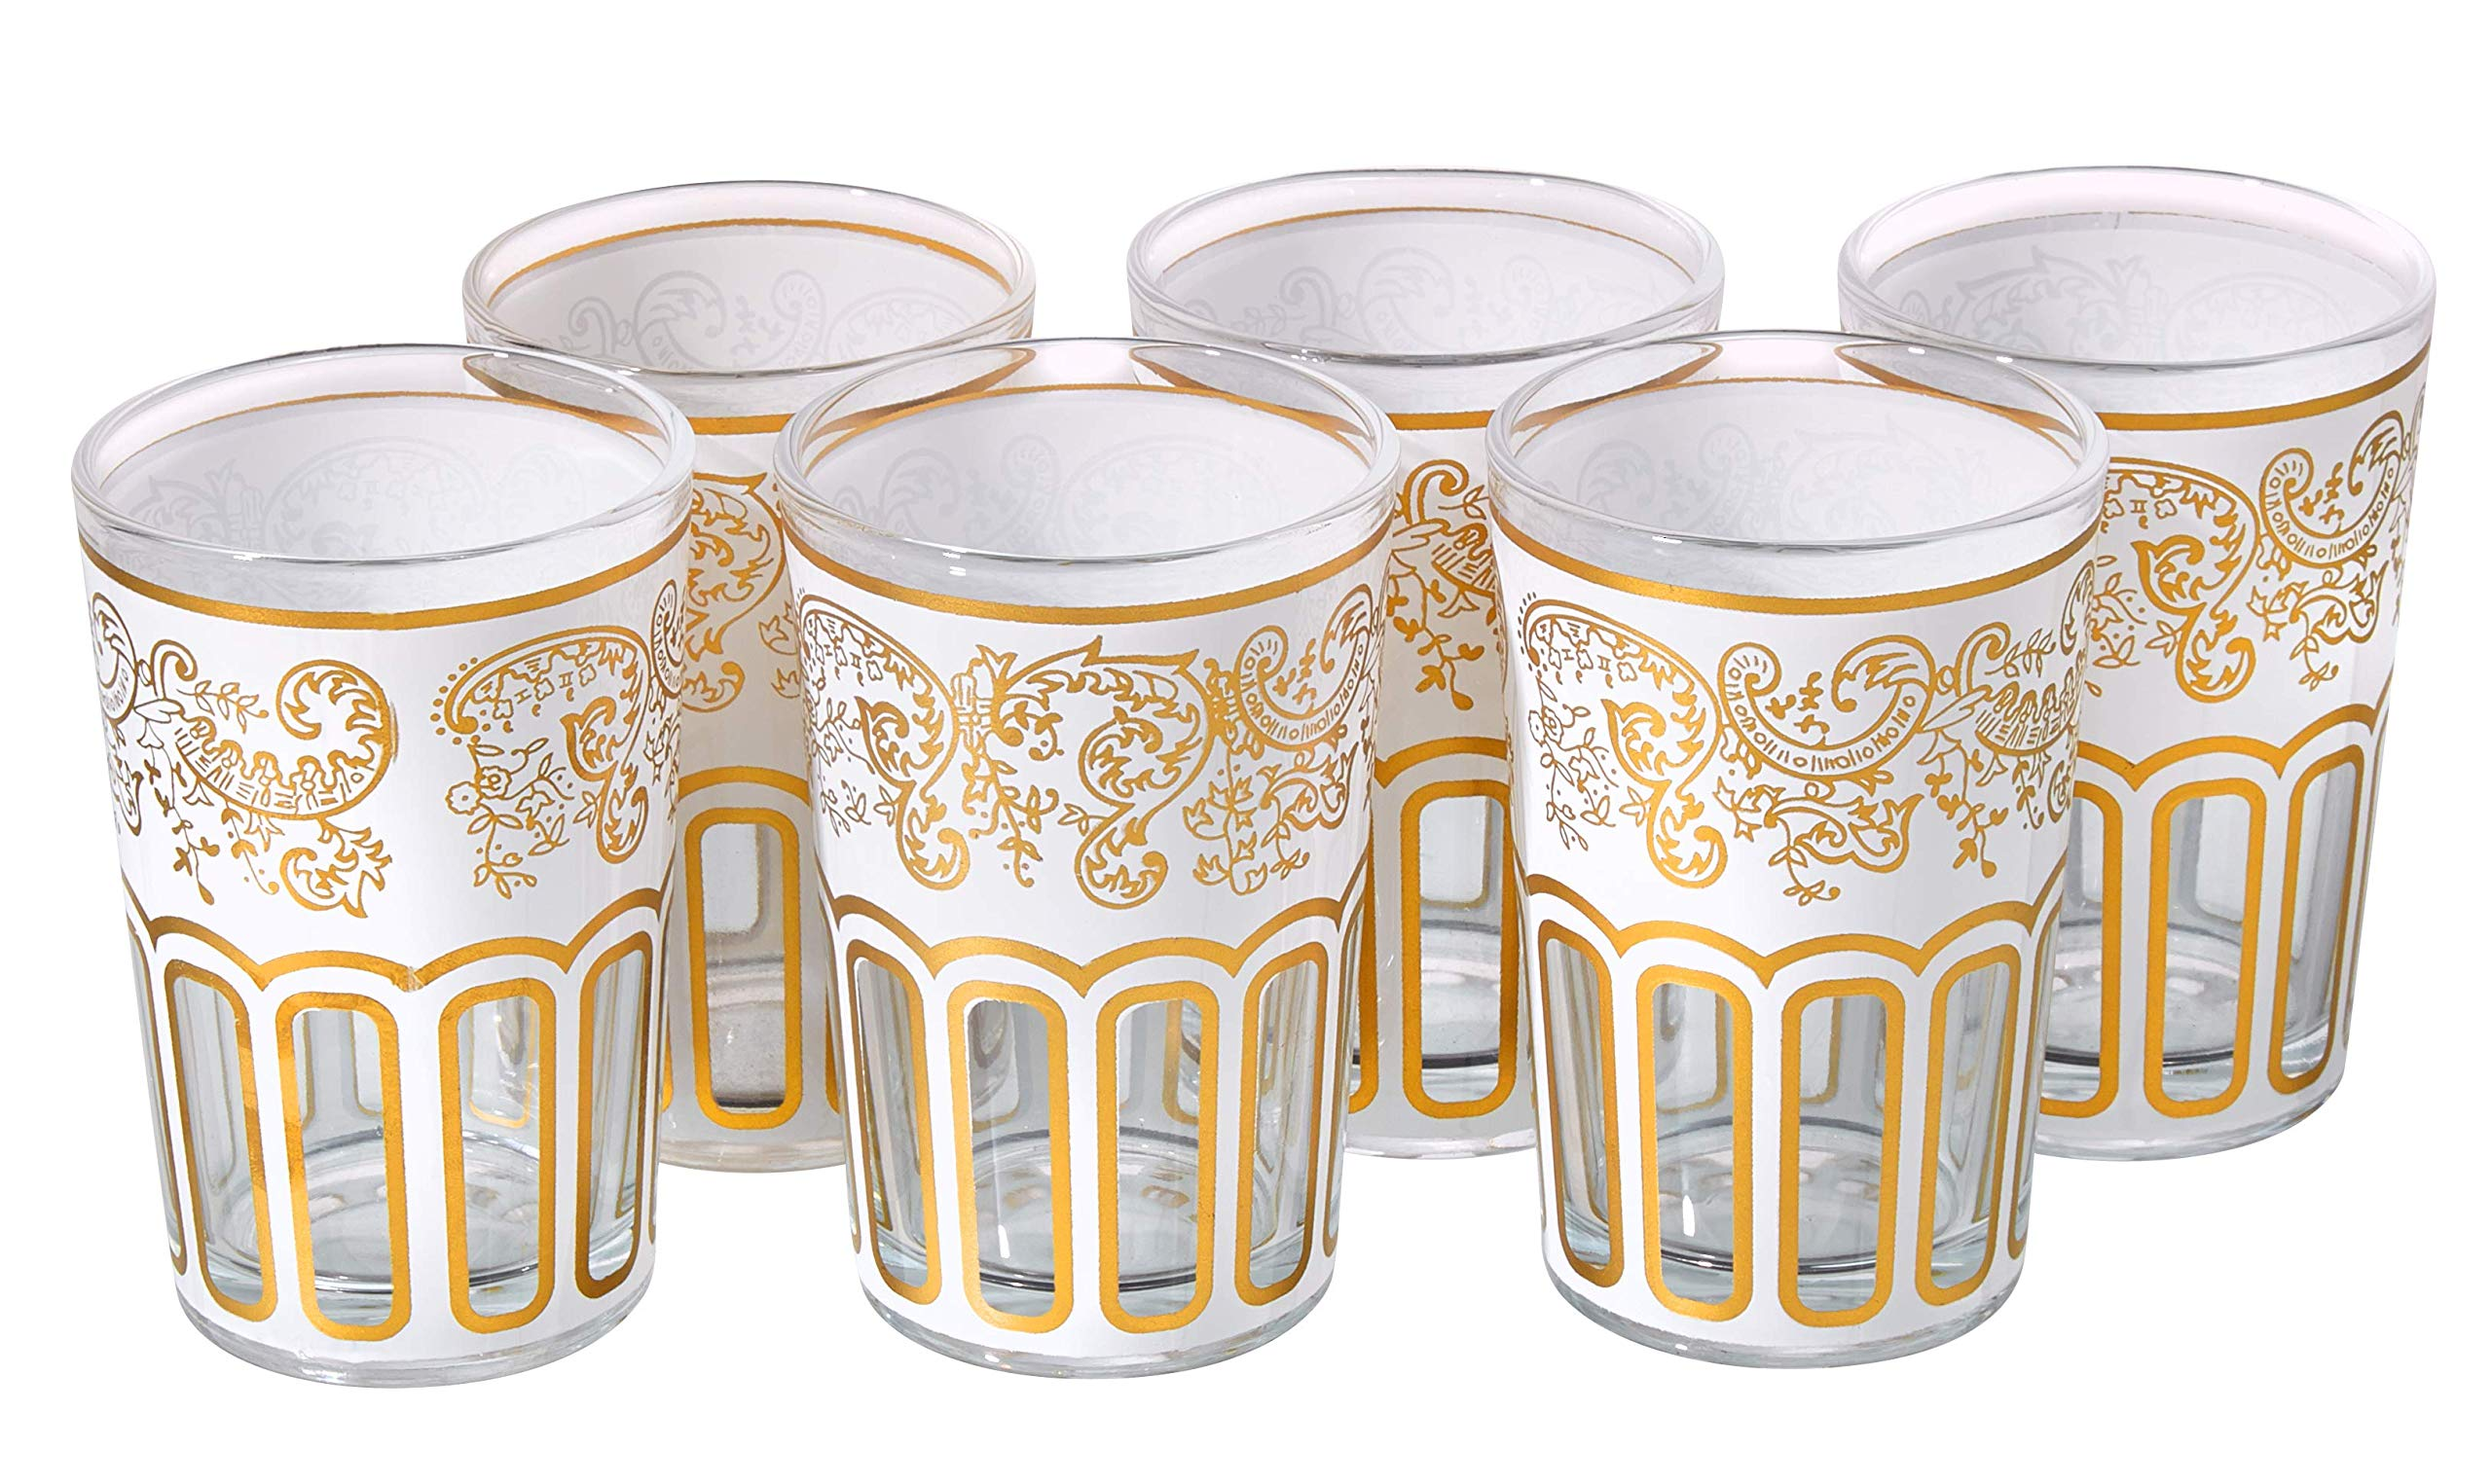 Moroccan Tea Glasses with a Beautiful Classical Moroccan Design White Gold Painted and Decorated by Hand Pack of 6